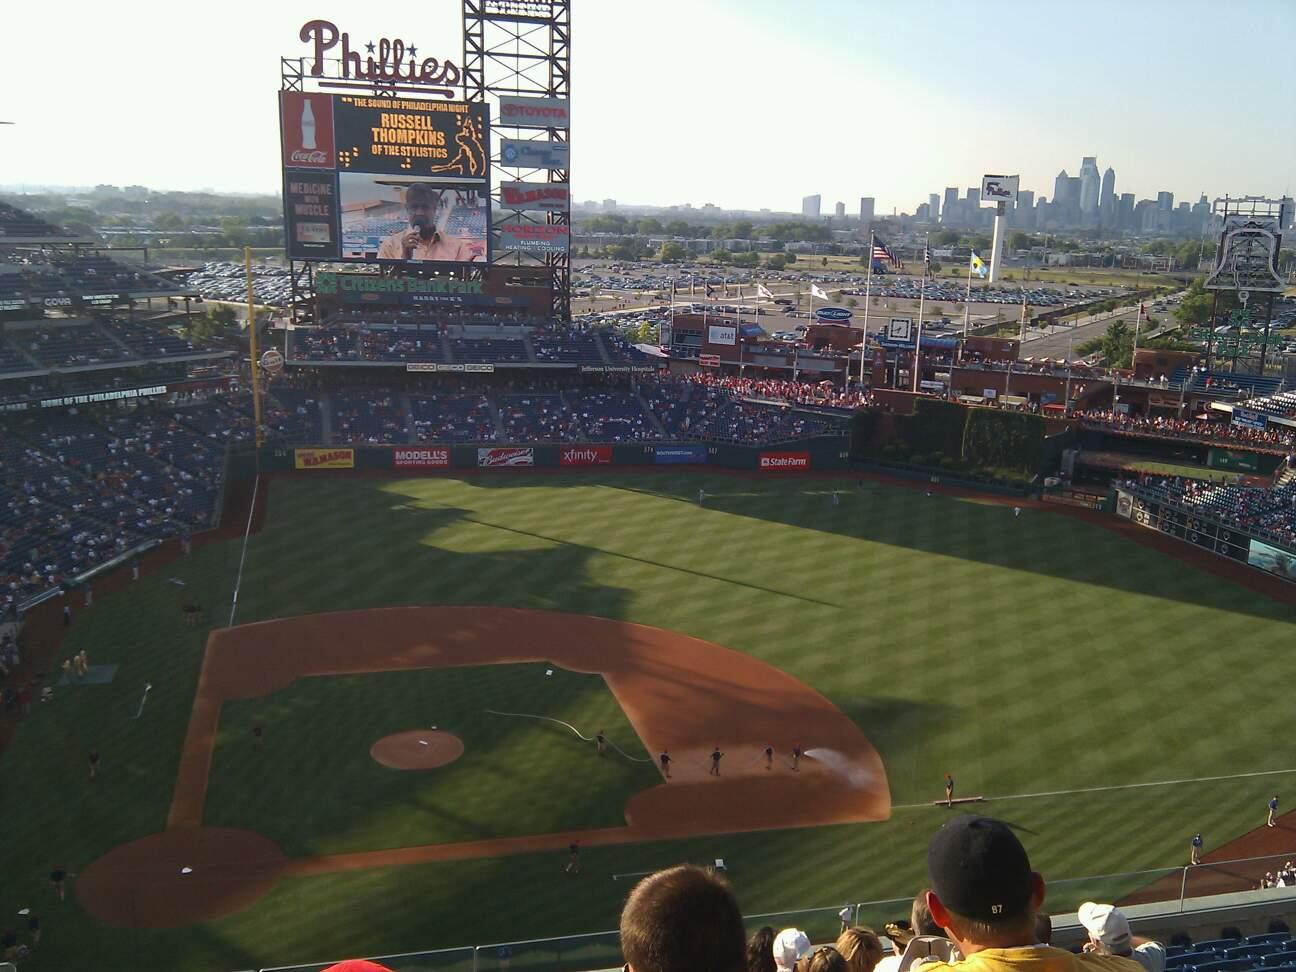 Citizens Bank Park Section 416 Row 13 Seat 20